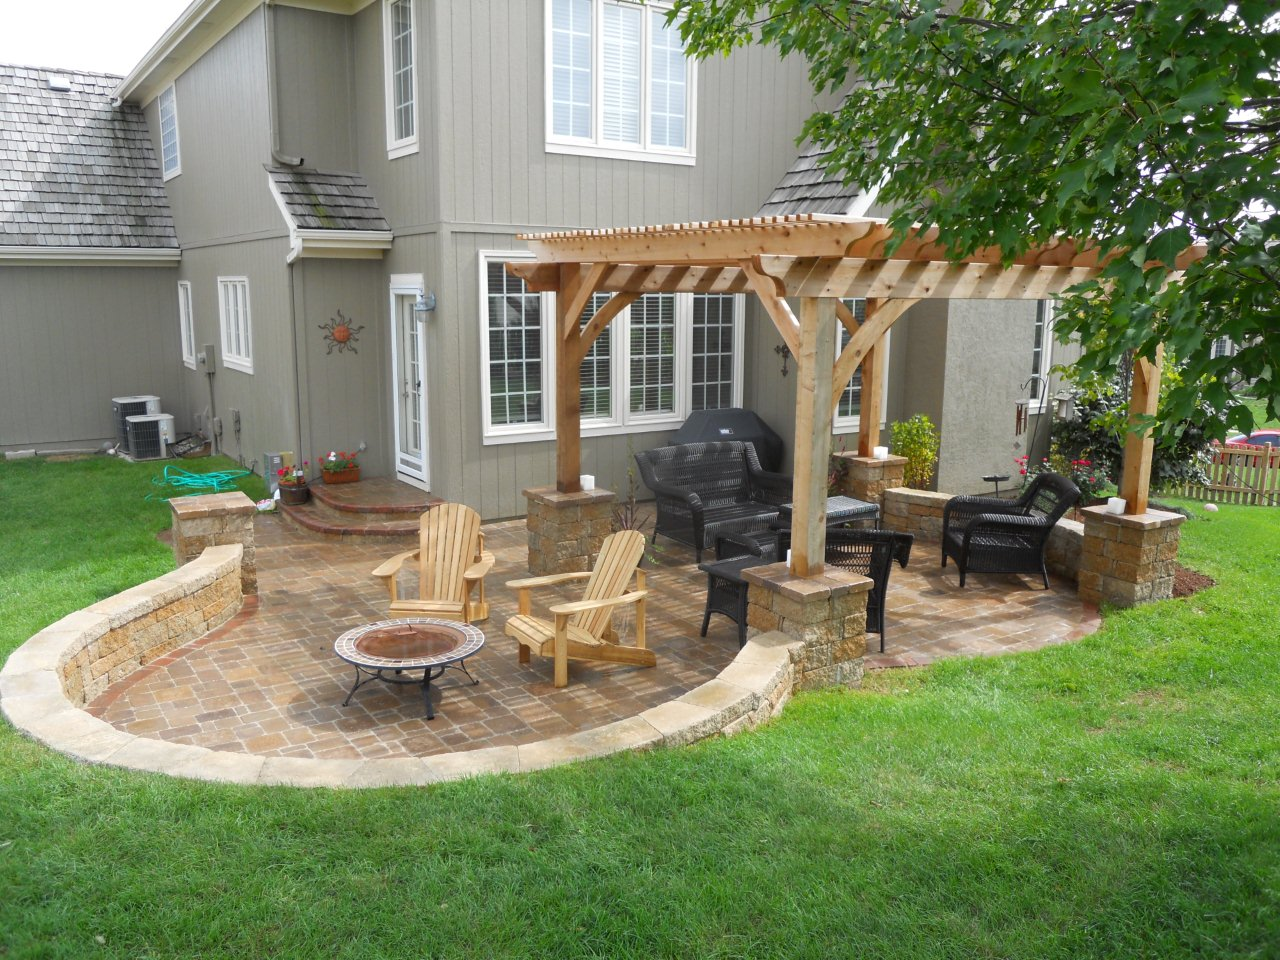 Flagstone Patio Pavers Design Ideas For Backyard Patio ... on Rock Patio Designs  id=62094